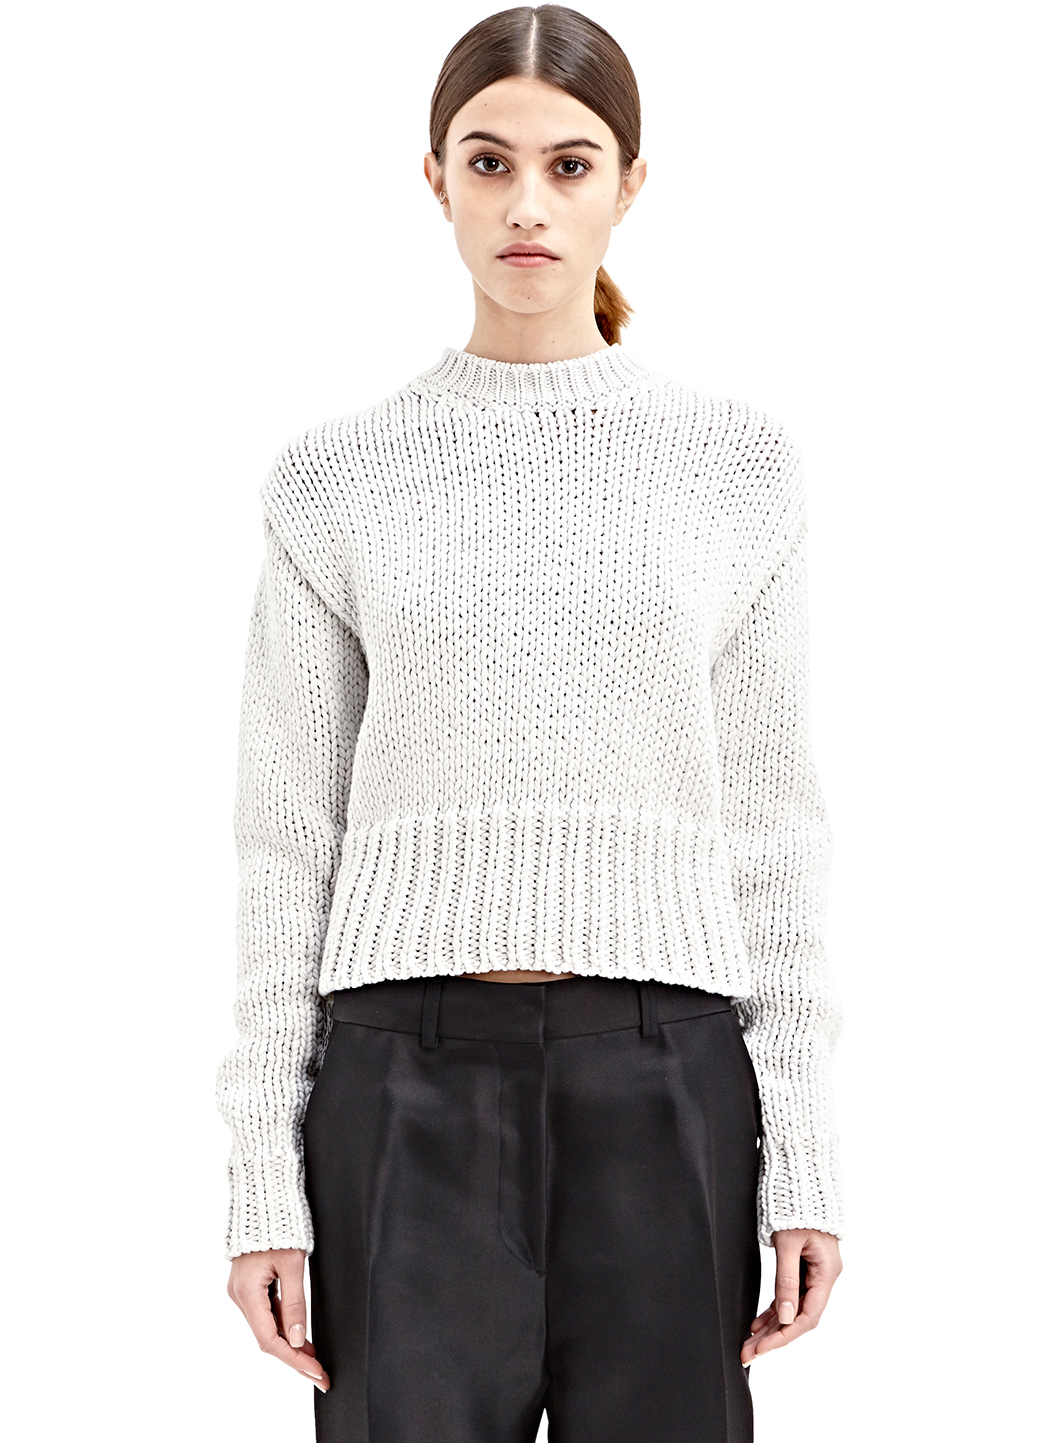 acne studios liana sweater in white lyst. Black Bedroom Furniture Sets. Home Design Ideas